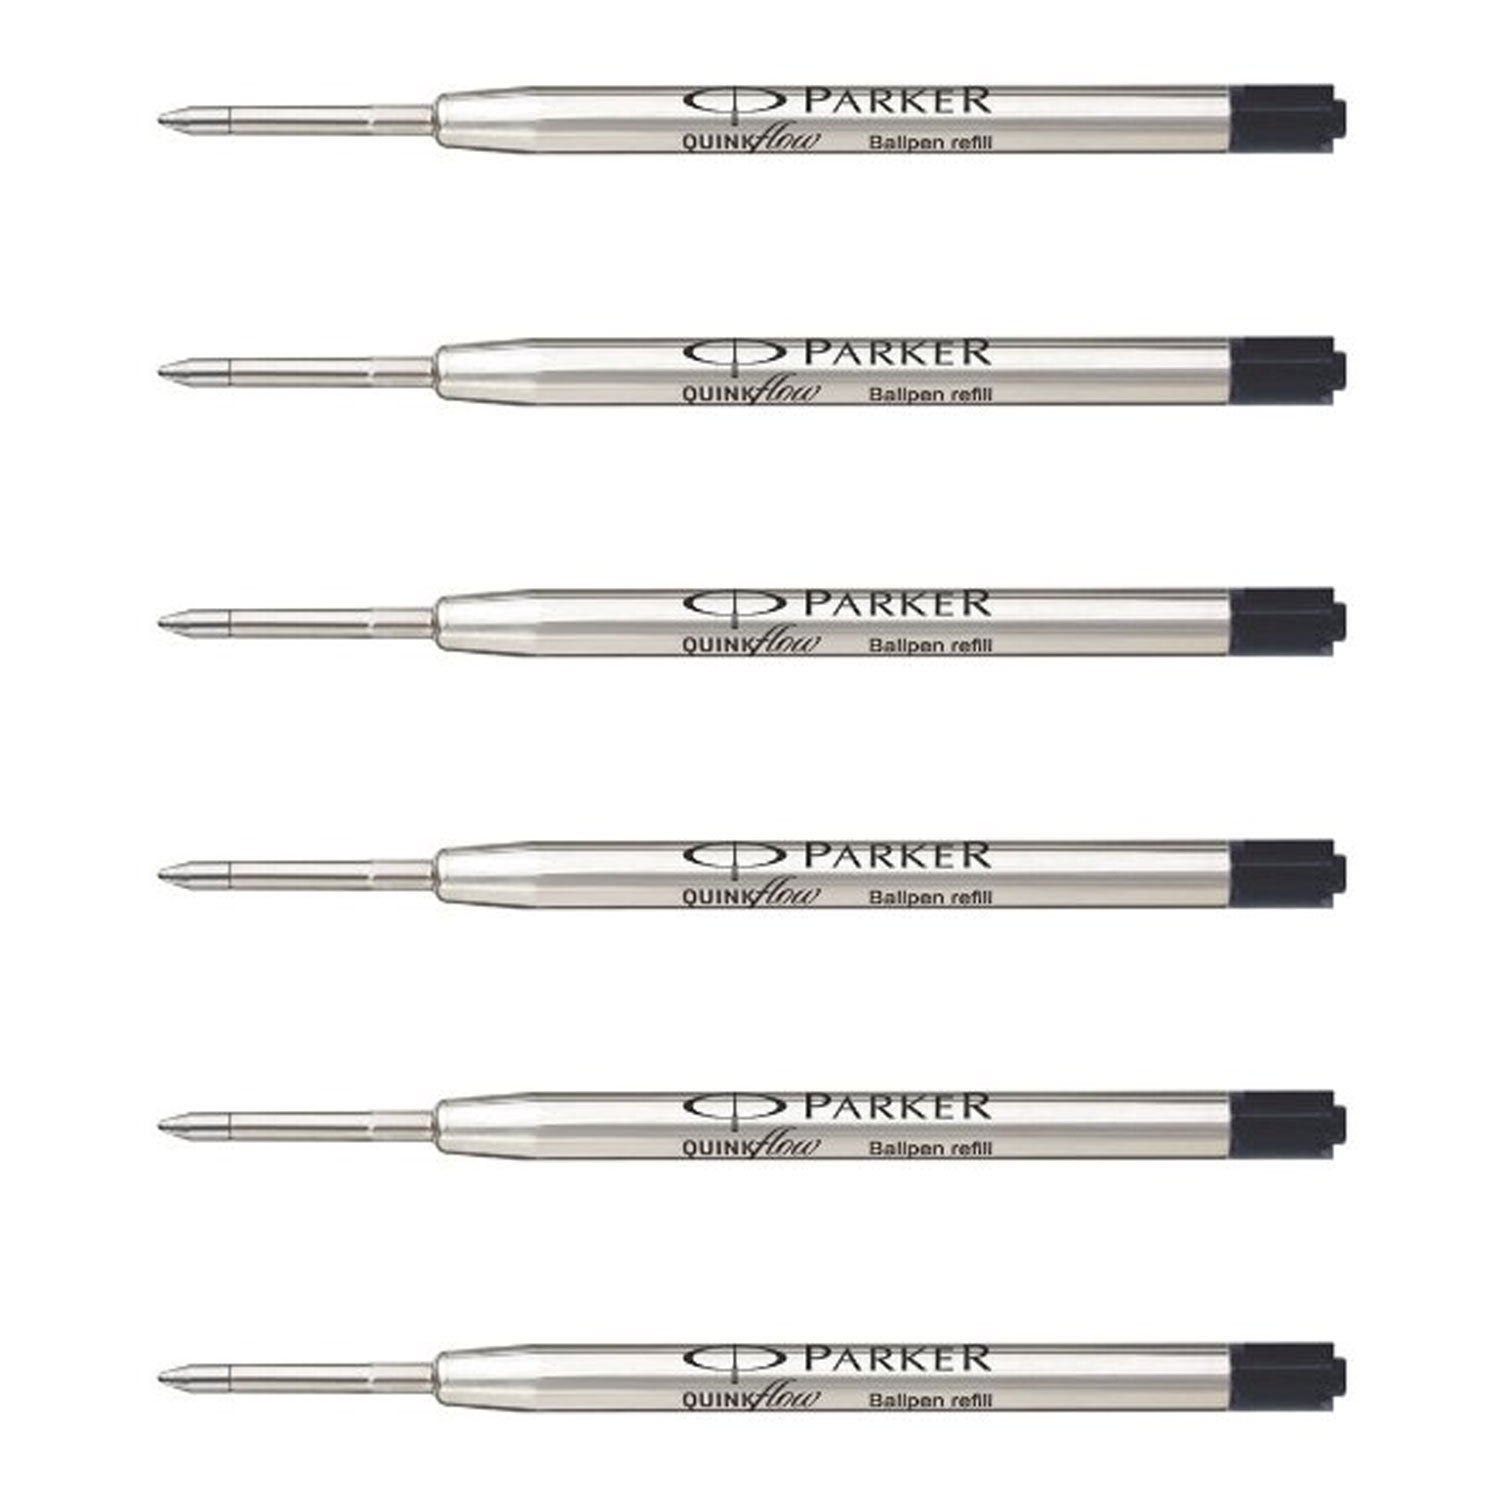 Parker QuinkFlow Ink Refill for Ballpoint Pens, Fine Point, Black Pack of 6 Refills (1782467) by Parker